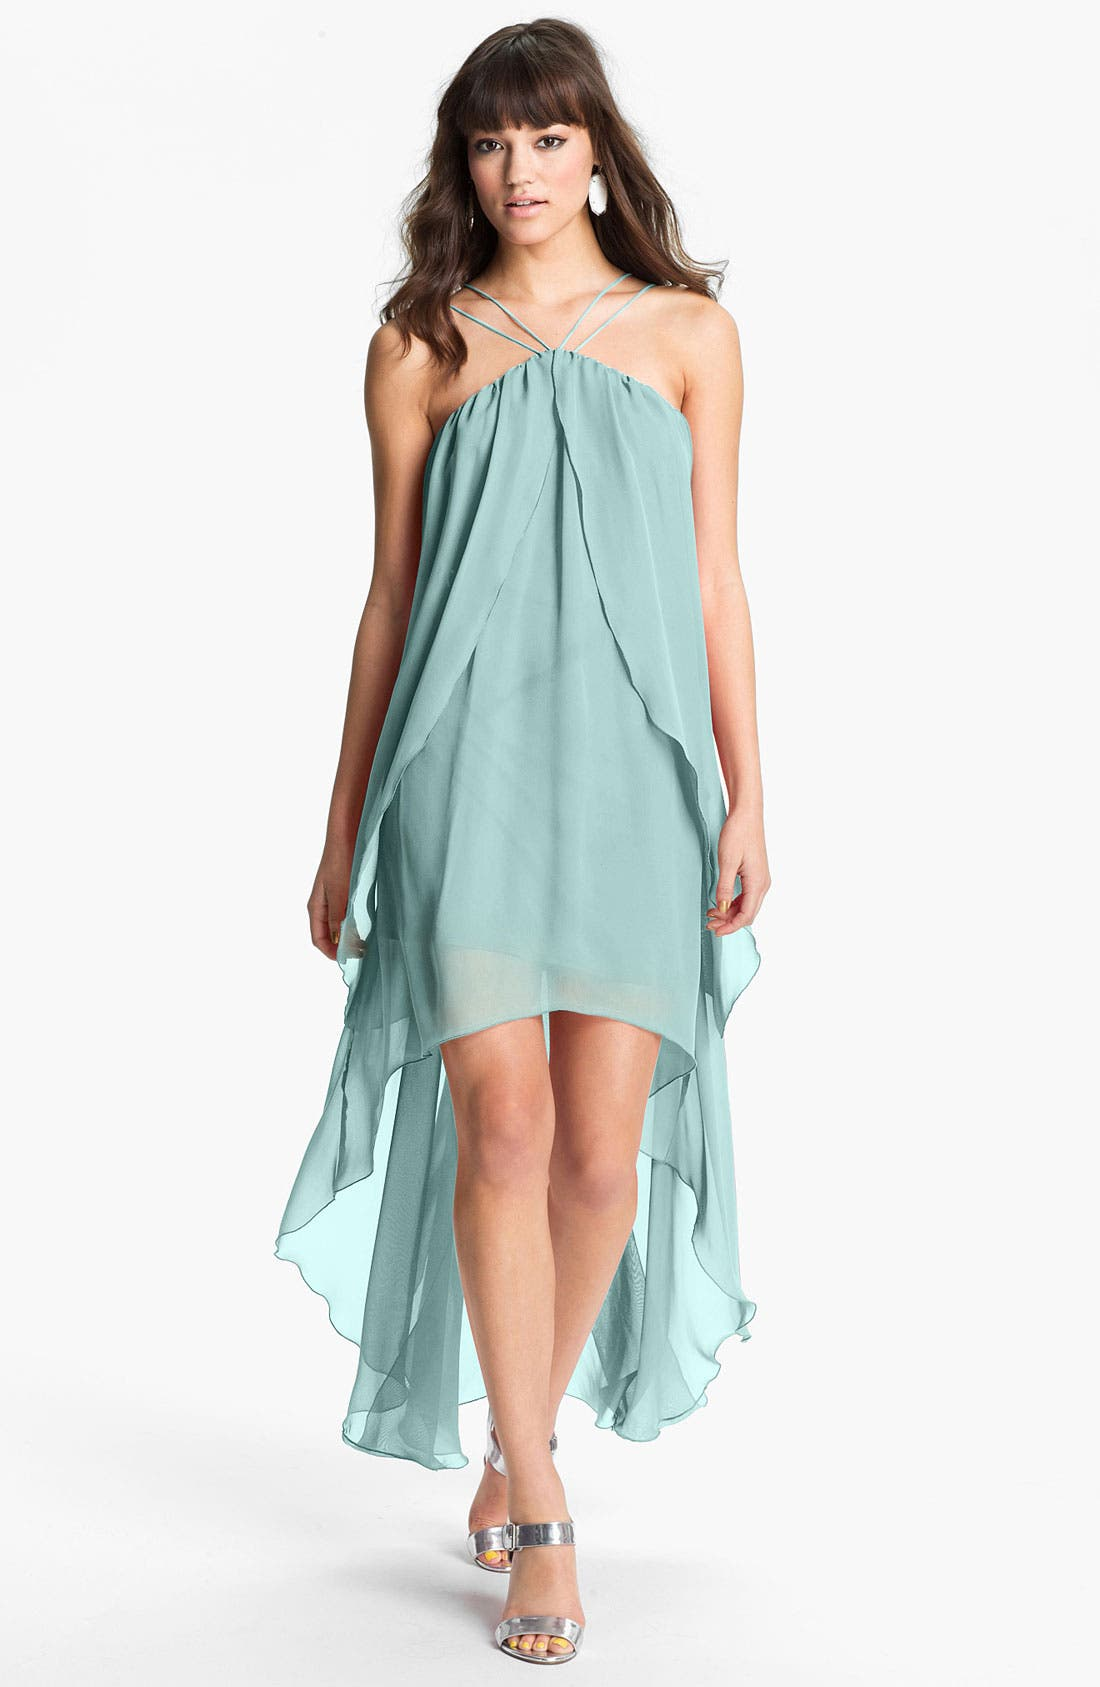 Alternate Image 1 Selected - Hailey by Adrianna Papell High/Low Chiffon Dress (Online Only)